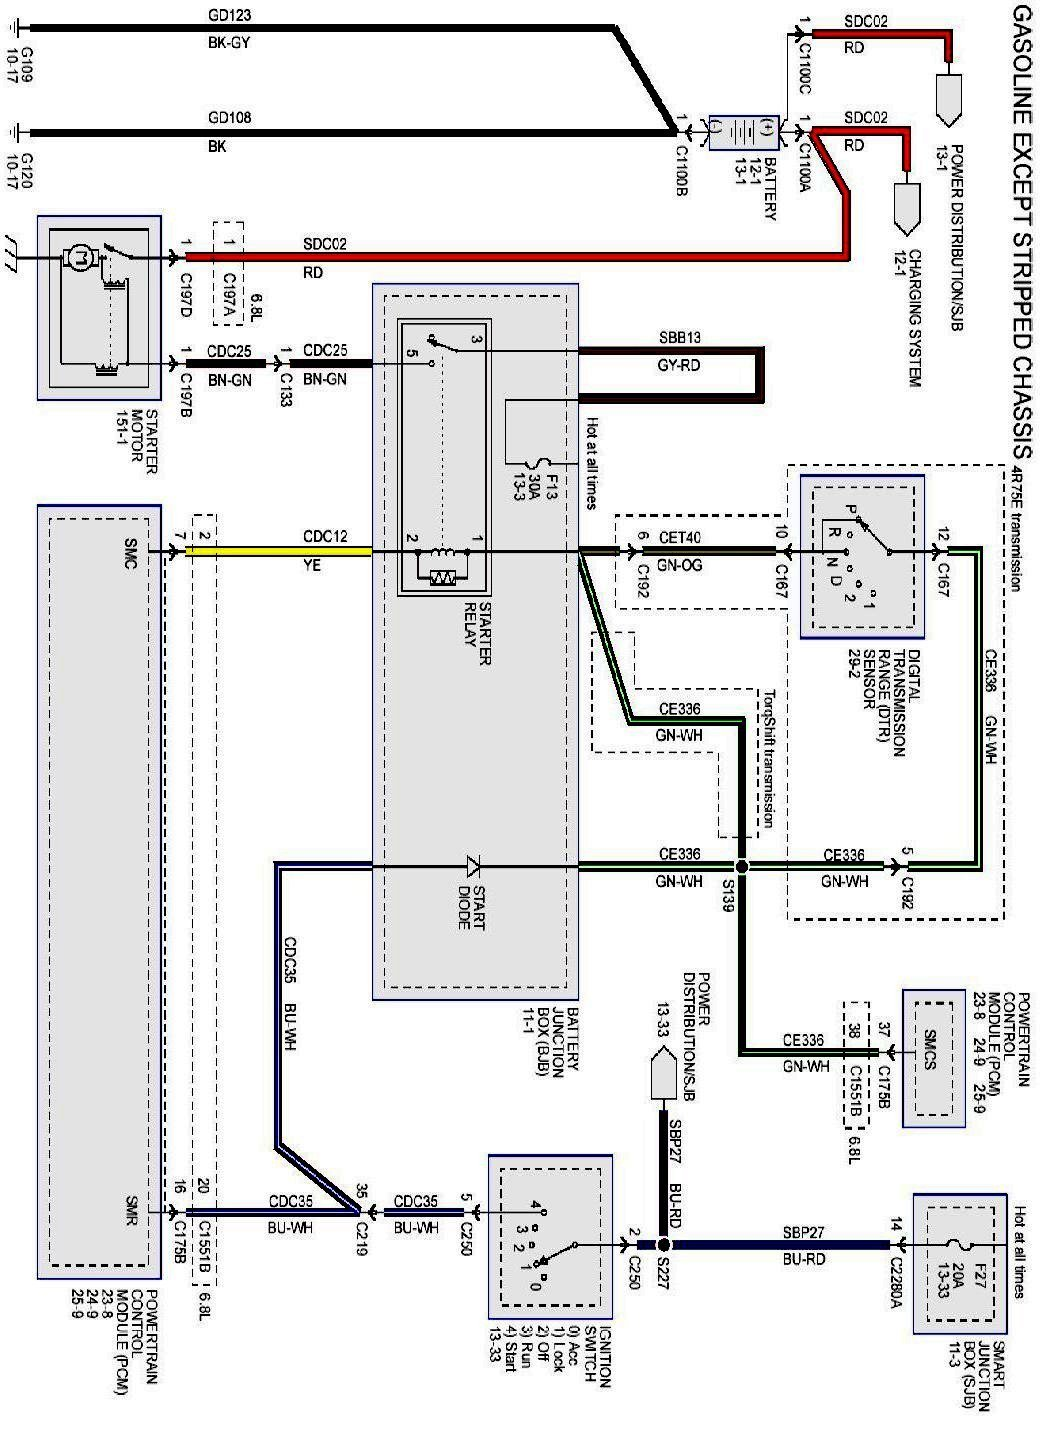 Diagram Kodiak 450 Wiring Diagram Full Version Hd Quality Wiring Diagram Mccwiring8780 Eliasvapo It